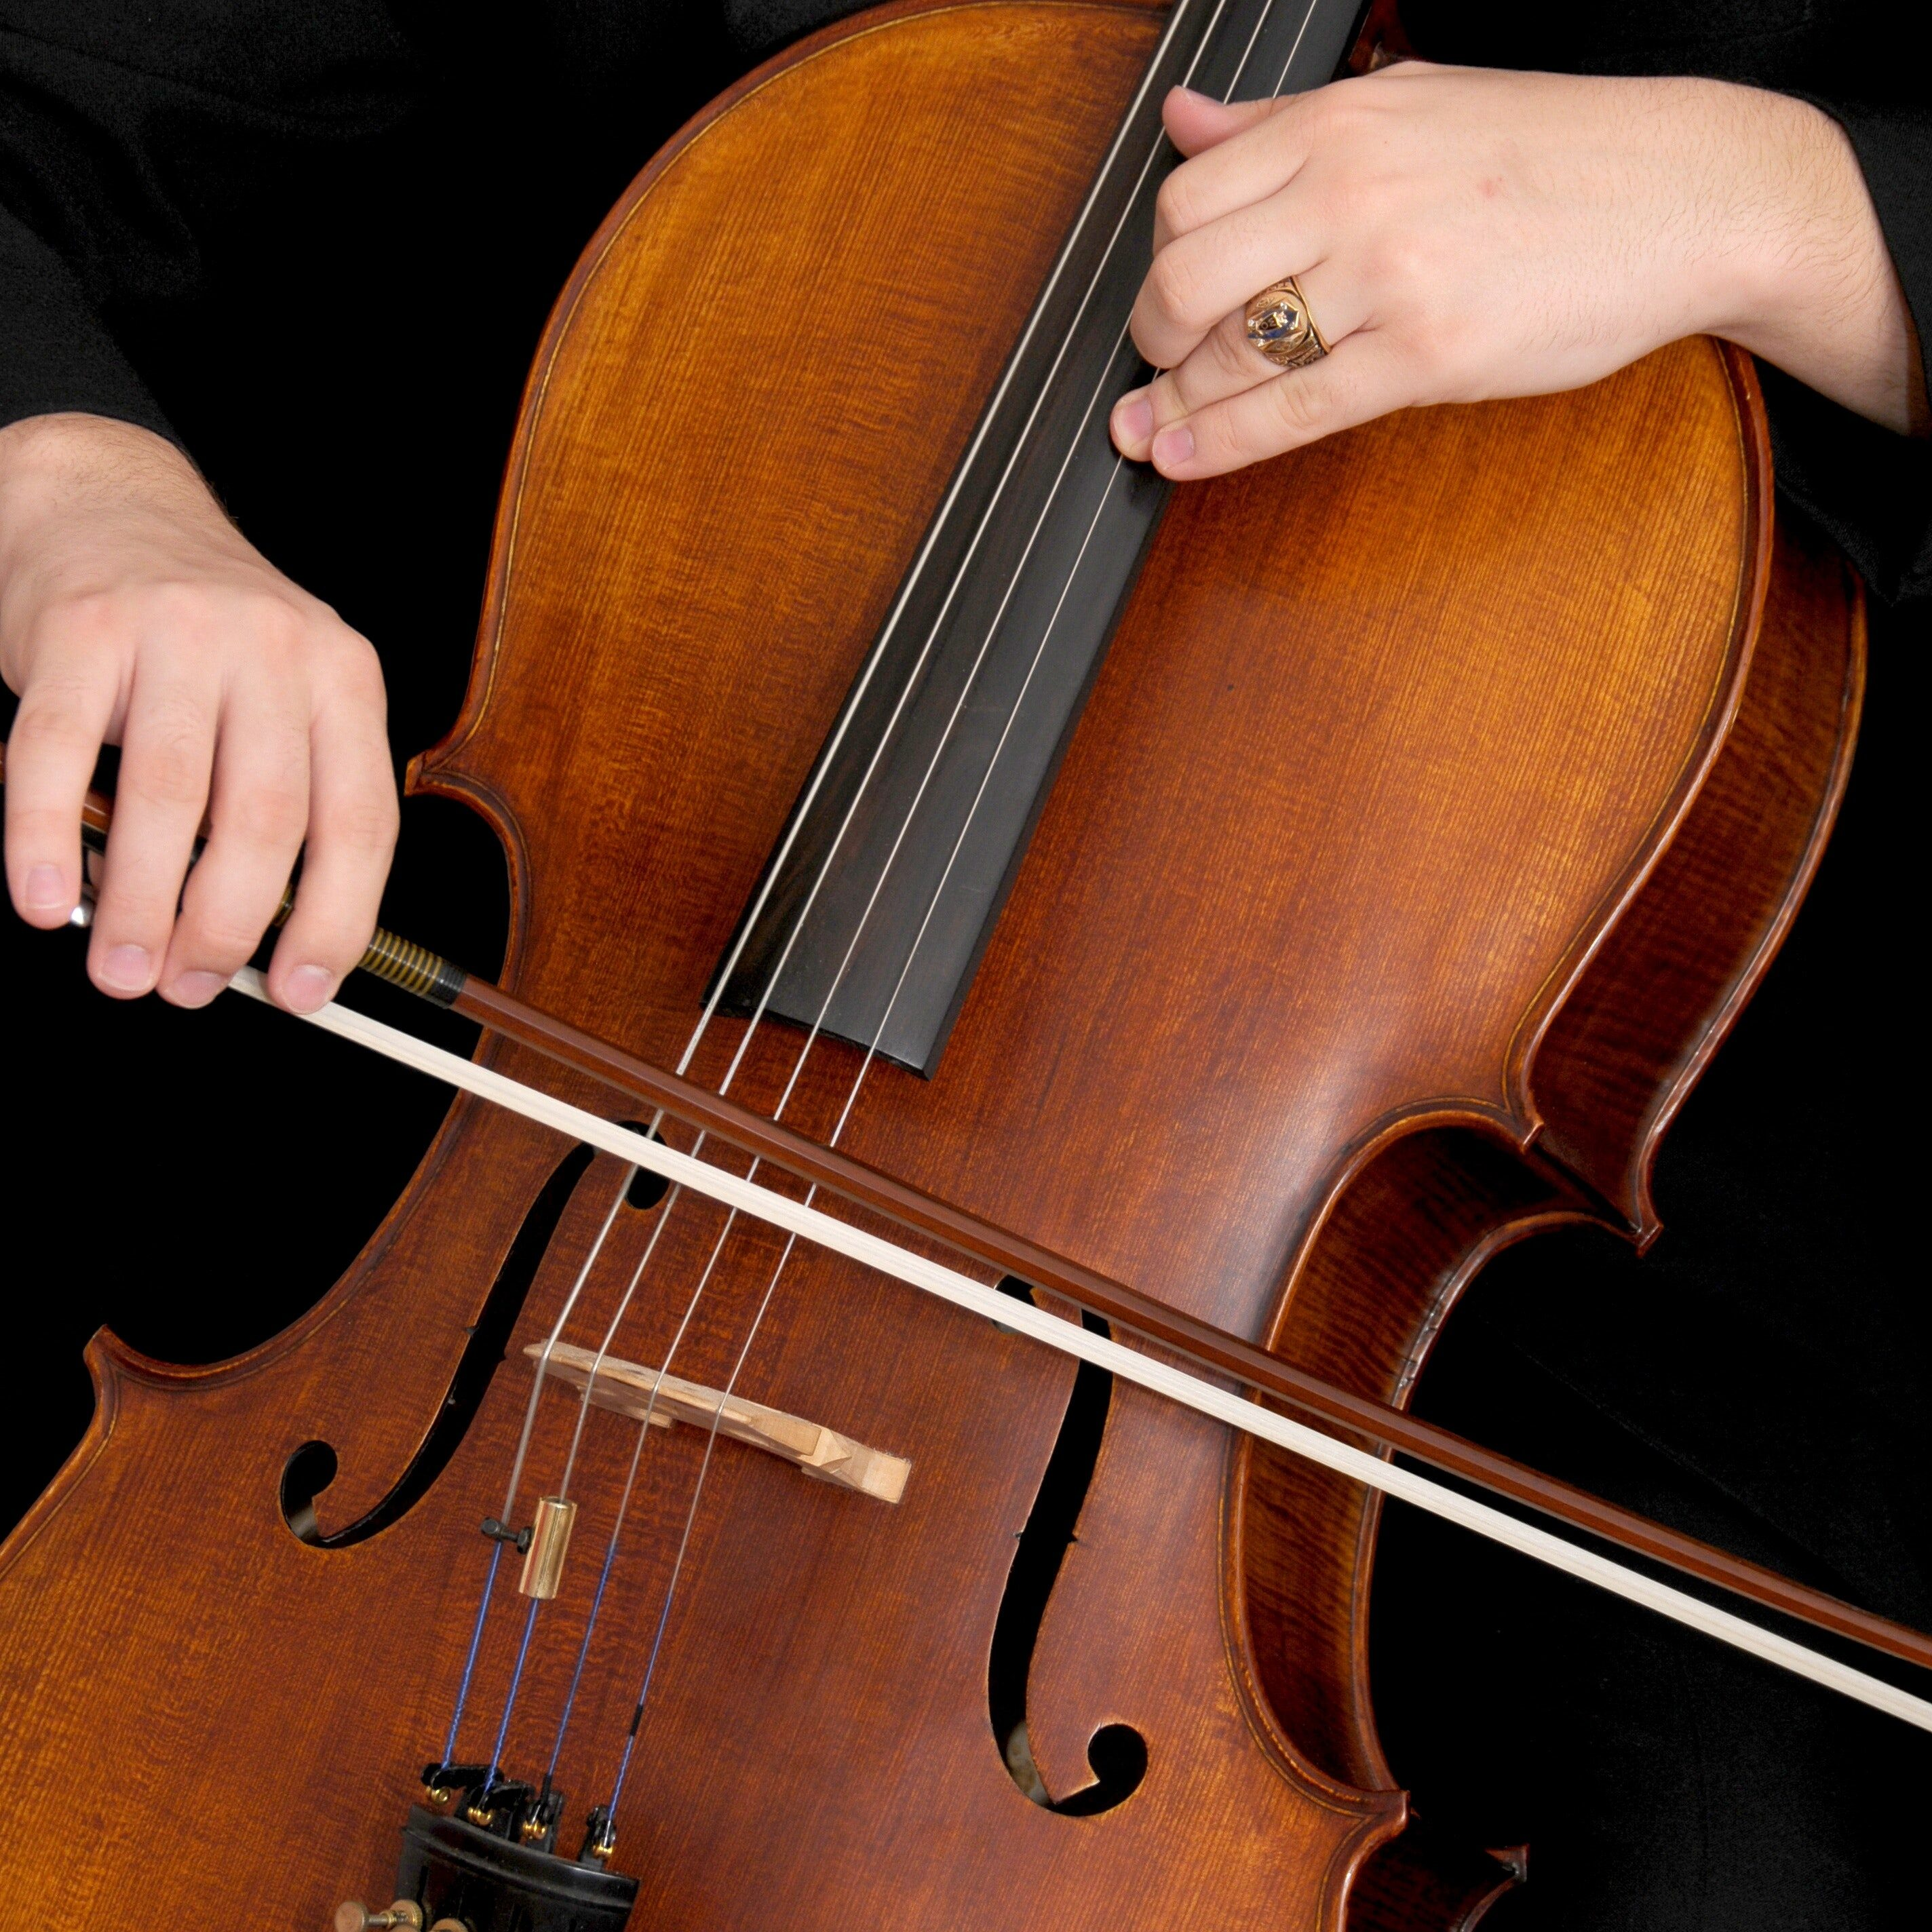 bowed-string-instrument-cello-cello-bow-462510